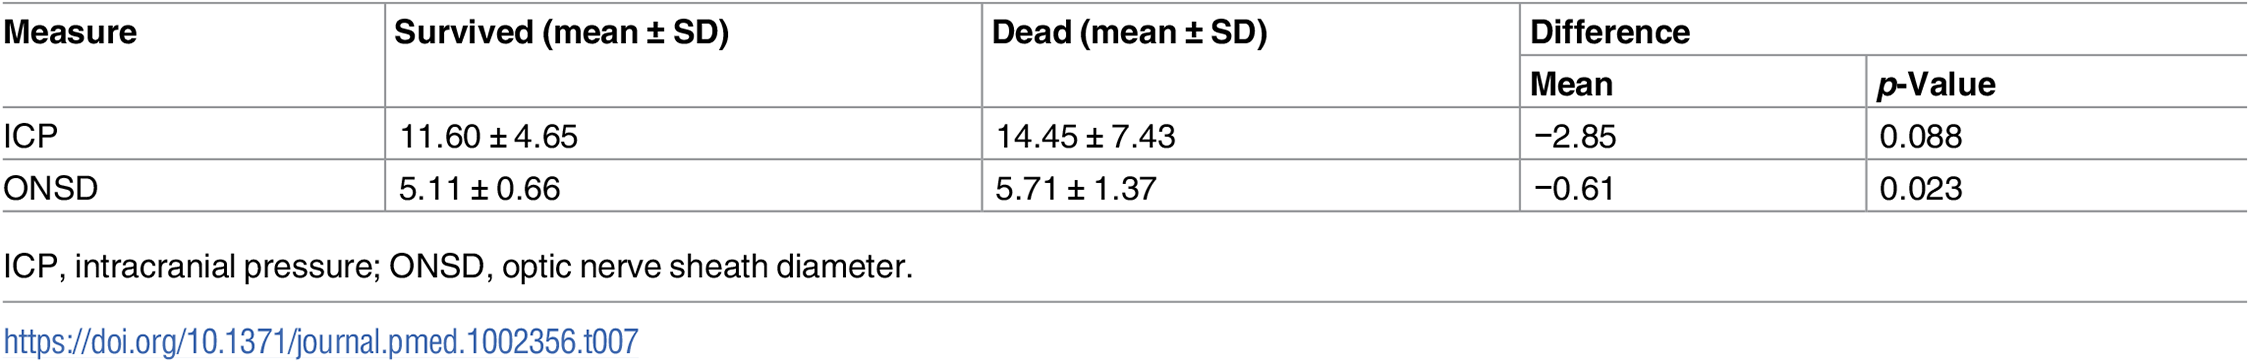 Summary table describing the association between ICP, ONSD, and mortality.